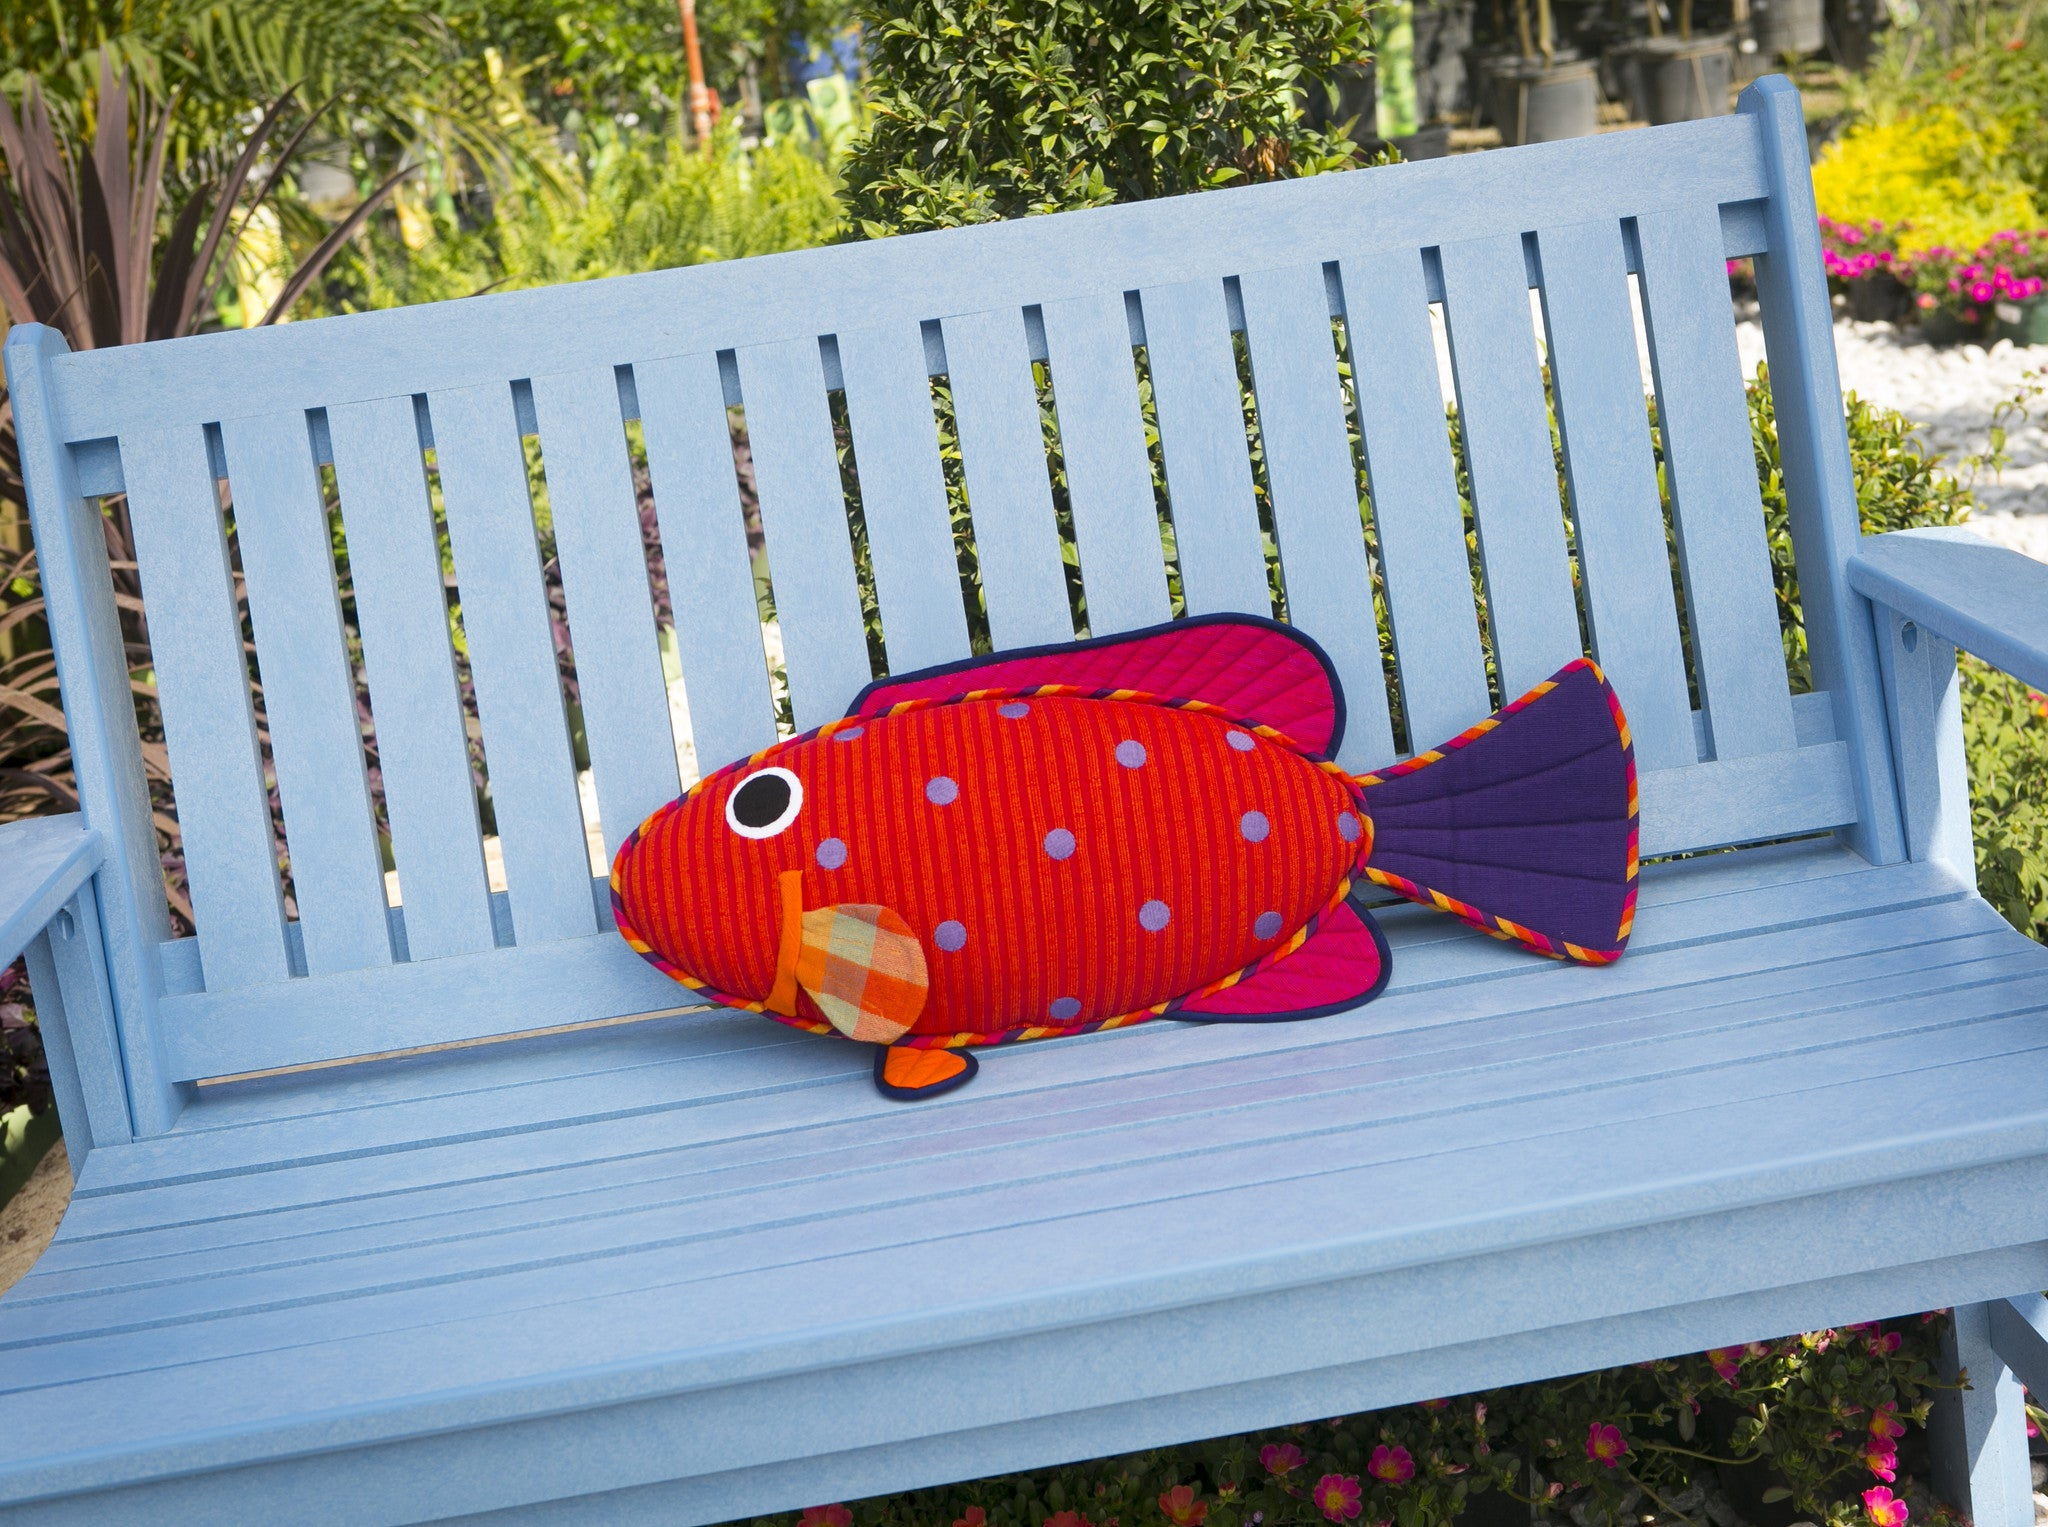 Emma, the Vermillion Rock Cod – Relaxing on the bench! (large size)